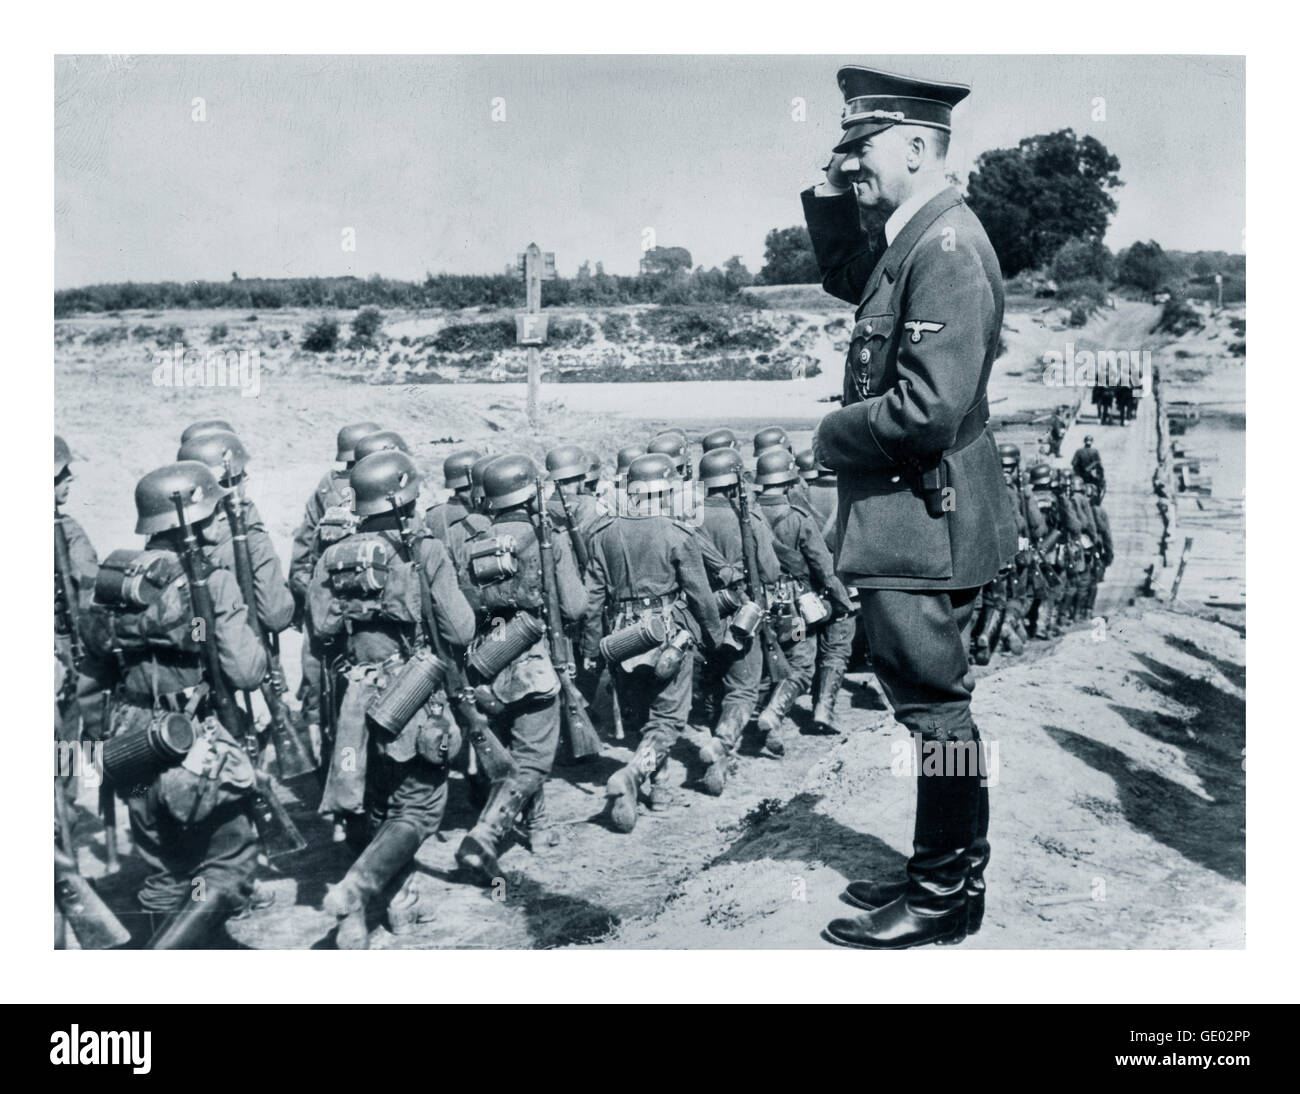 GERMAN INVASION POLAND Adolf Hitler saluting marching Wermacht troops during occupation of Poland WW2 - Stock Image